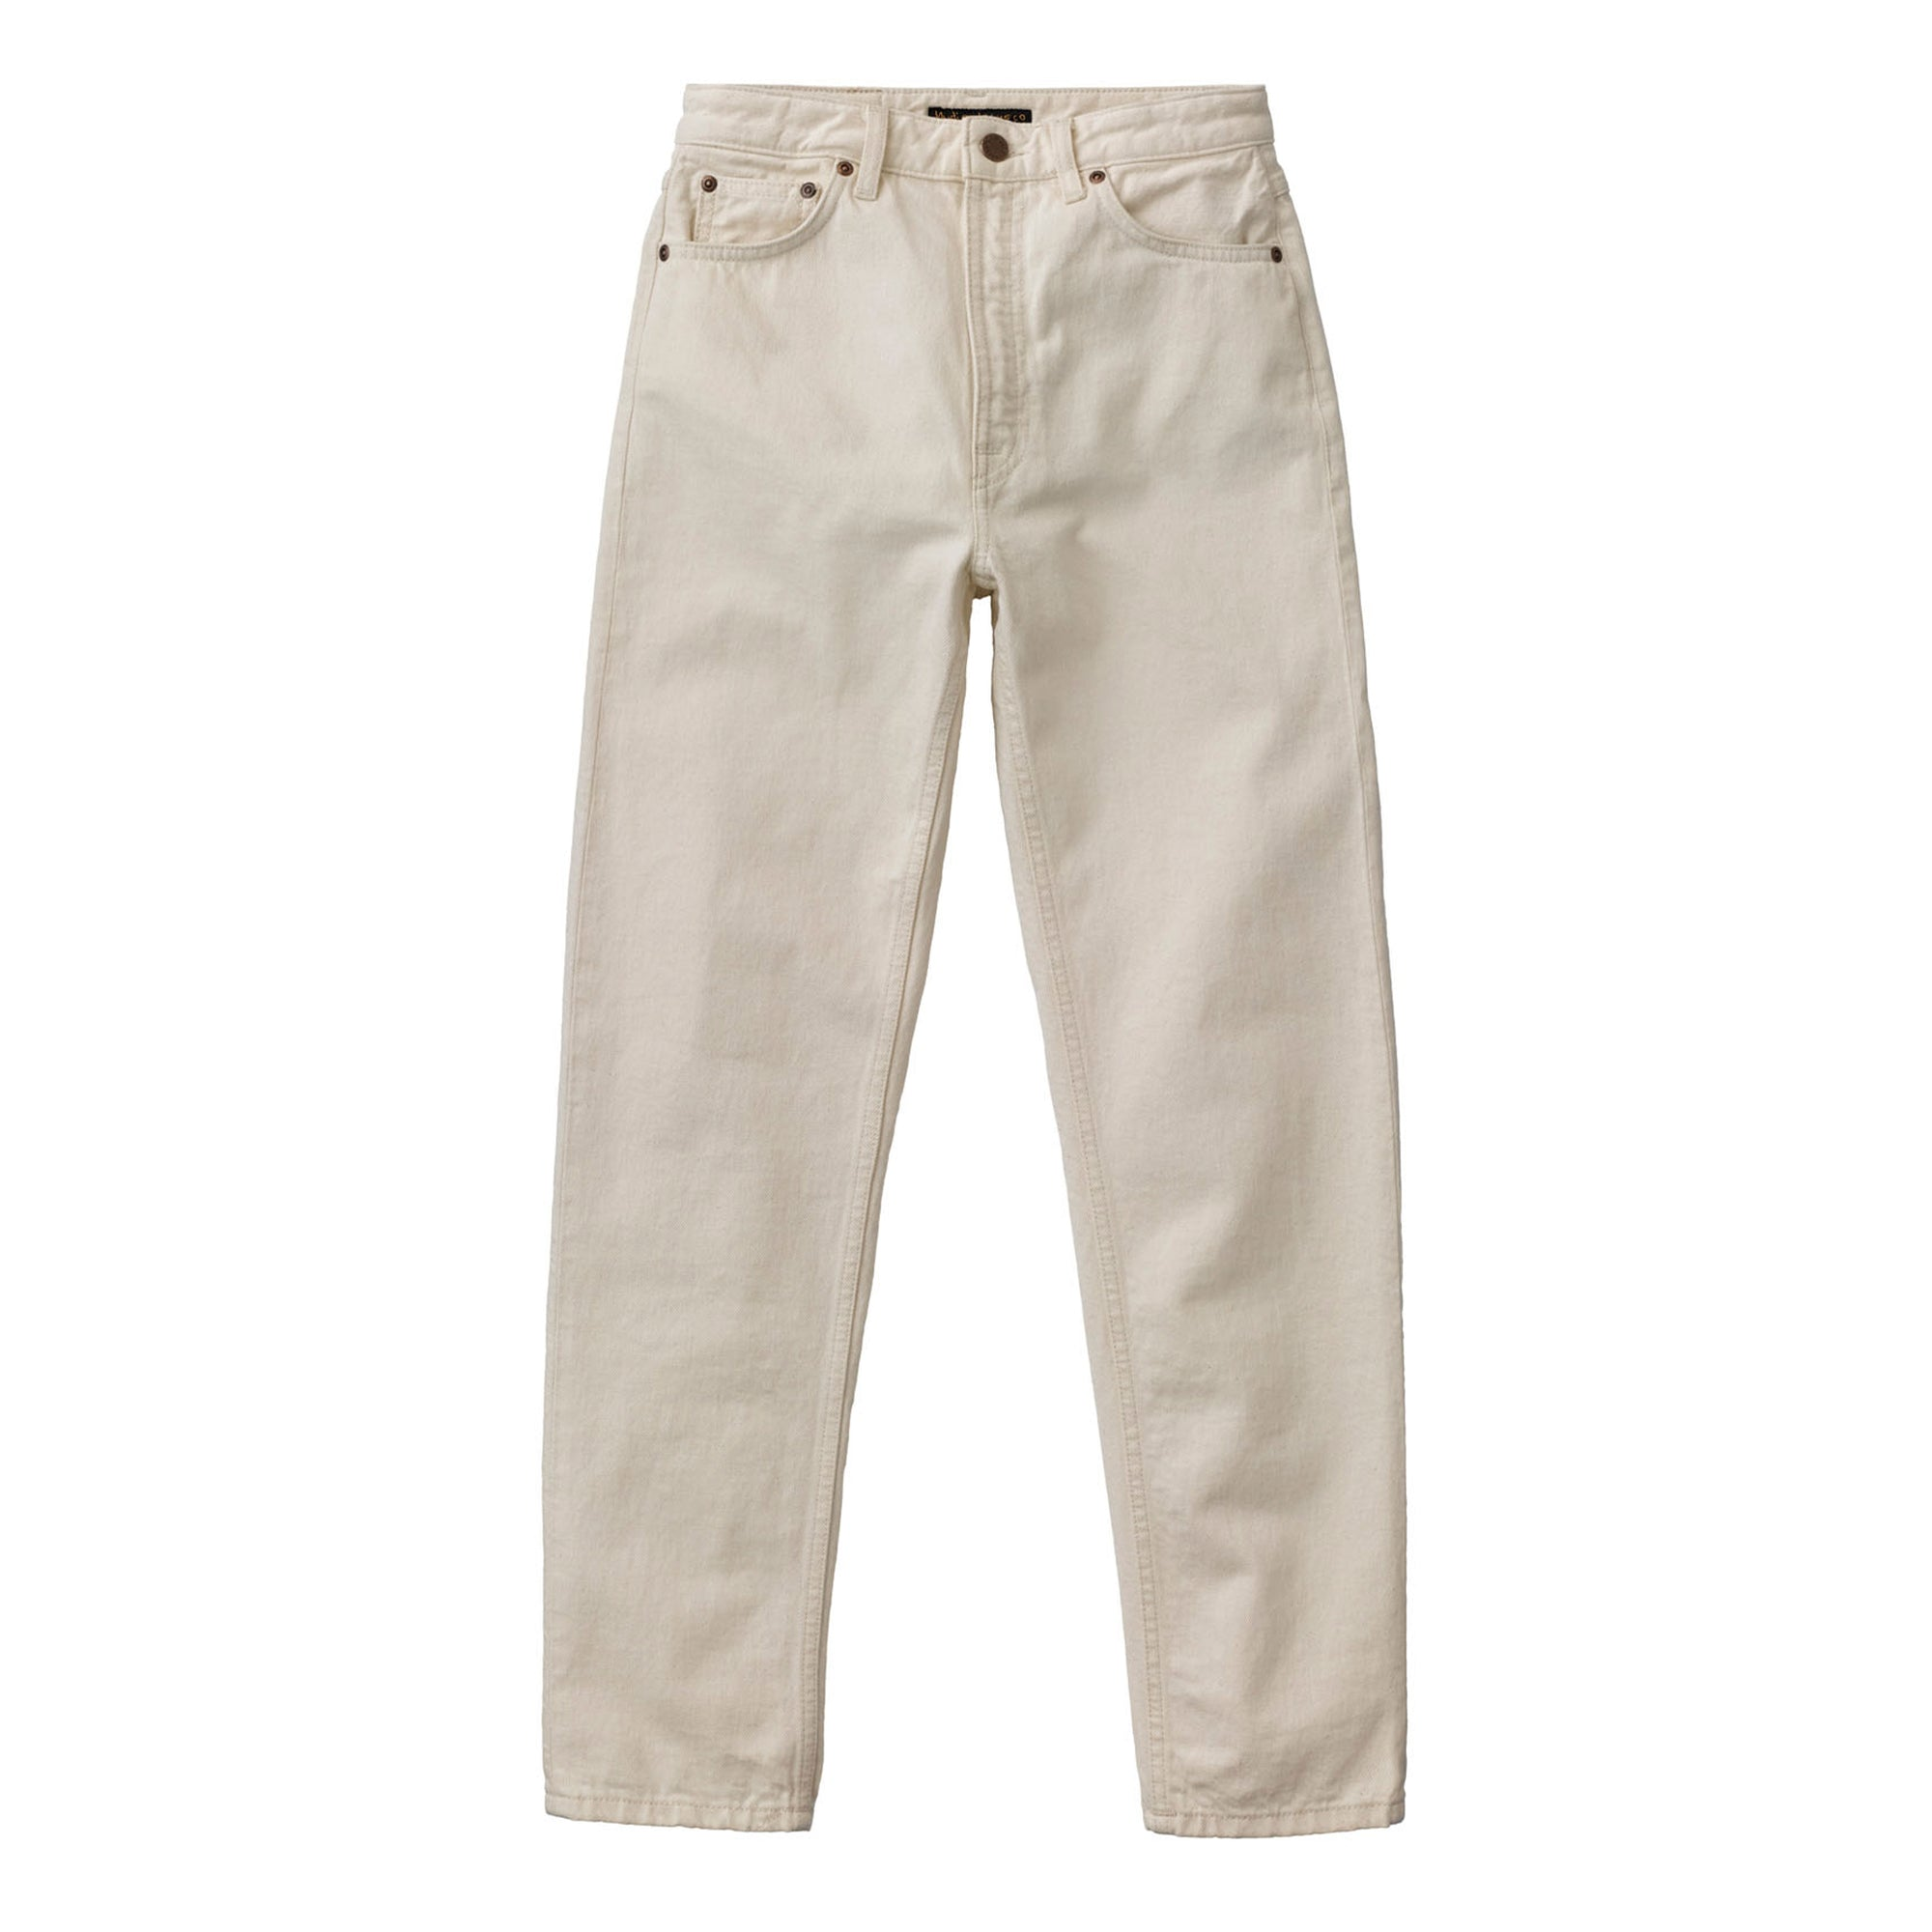 Nudie Jeans Womens Breezy Brit: Dusty White - The Union Project